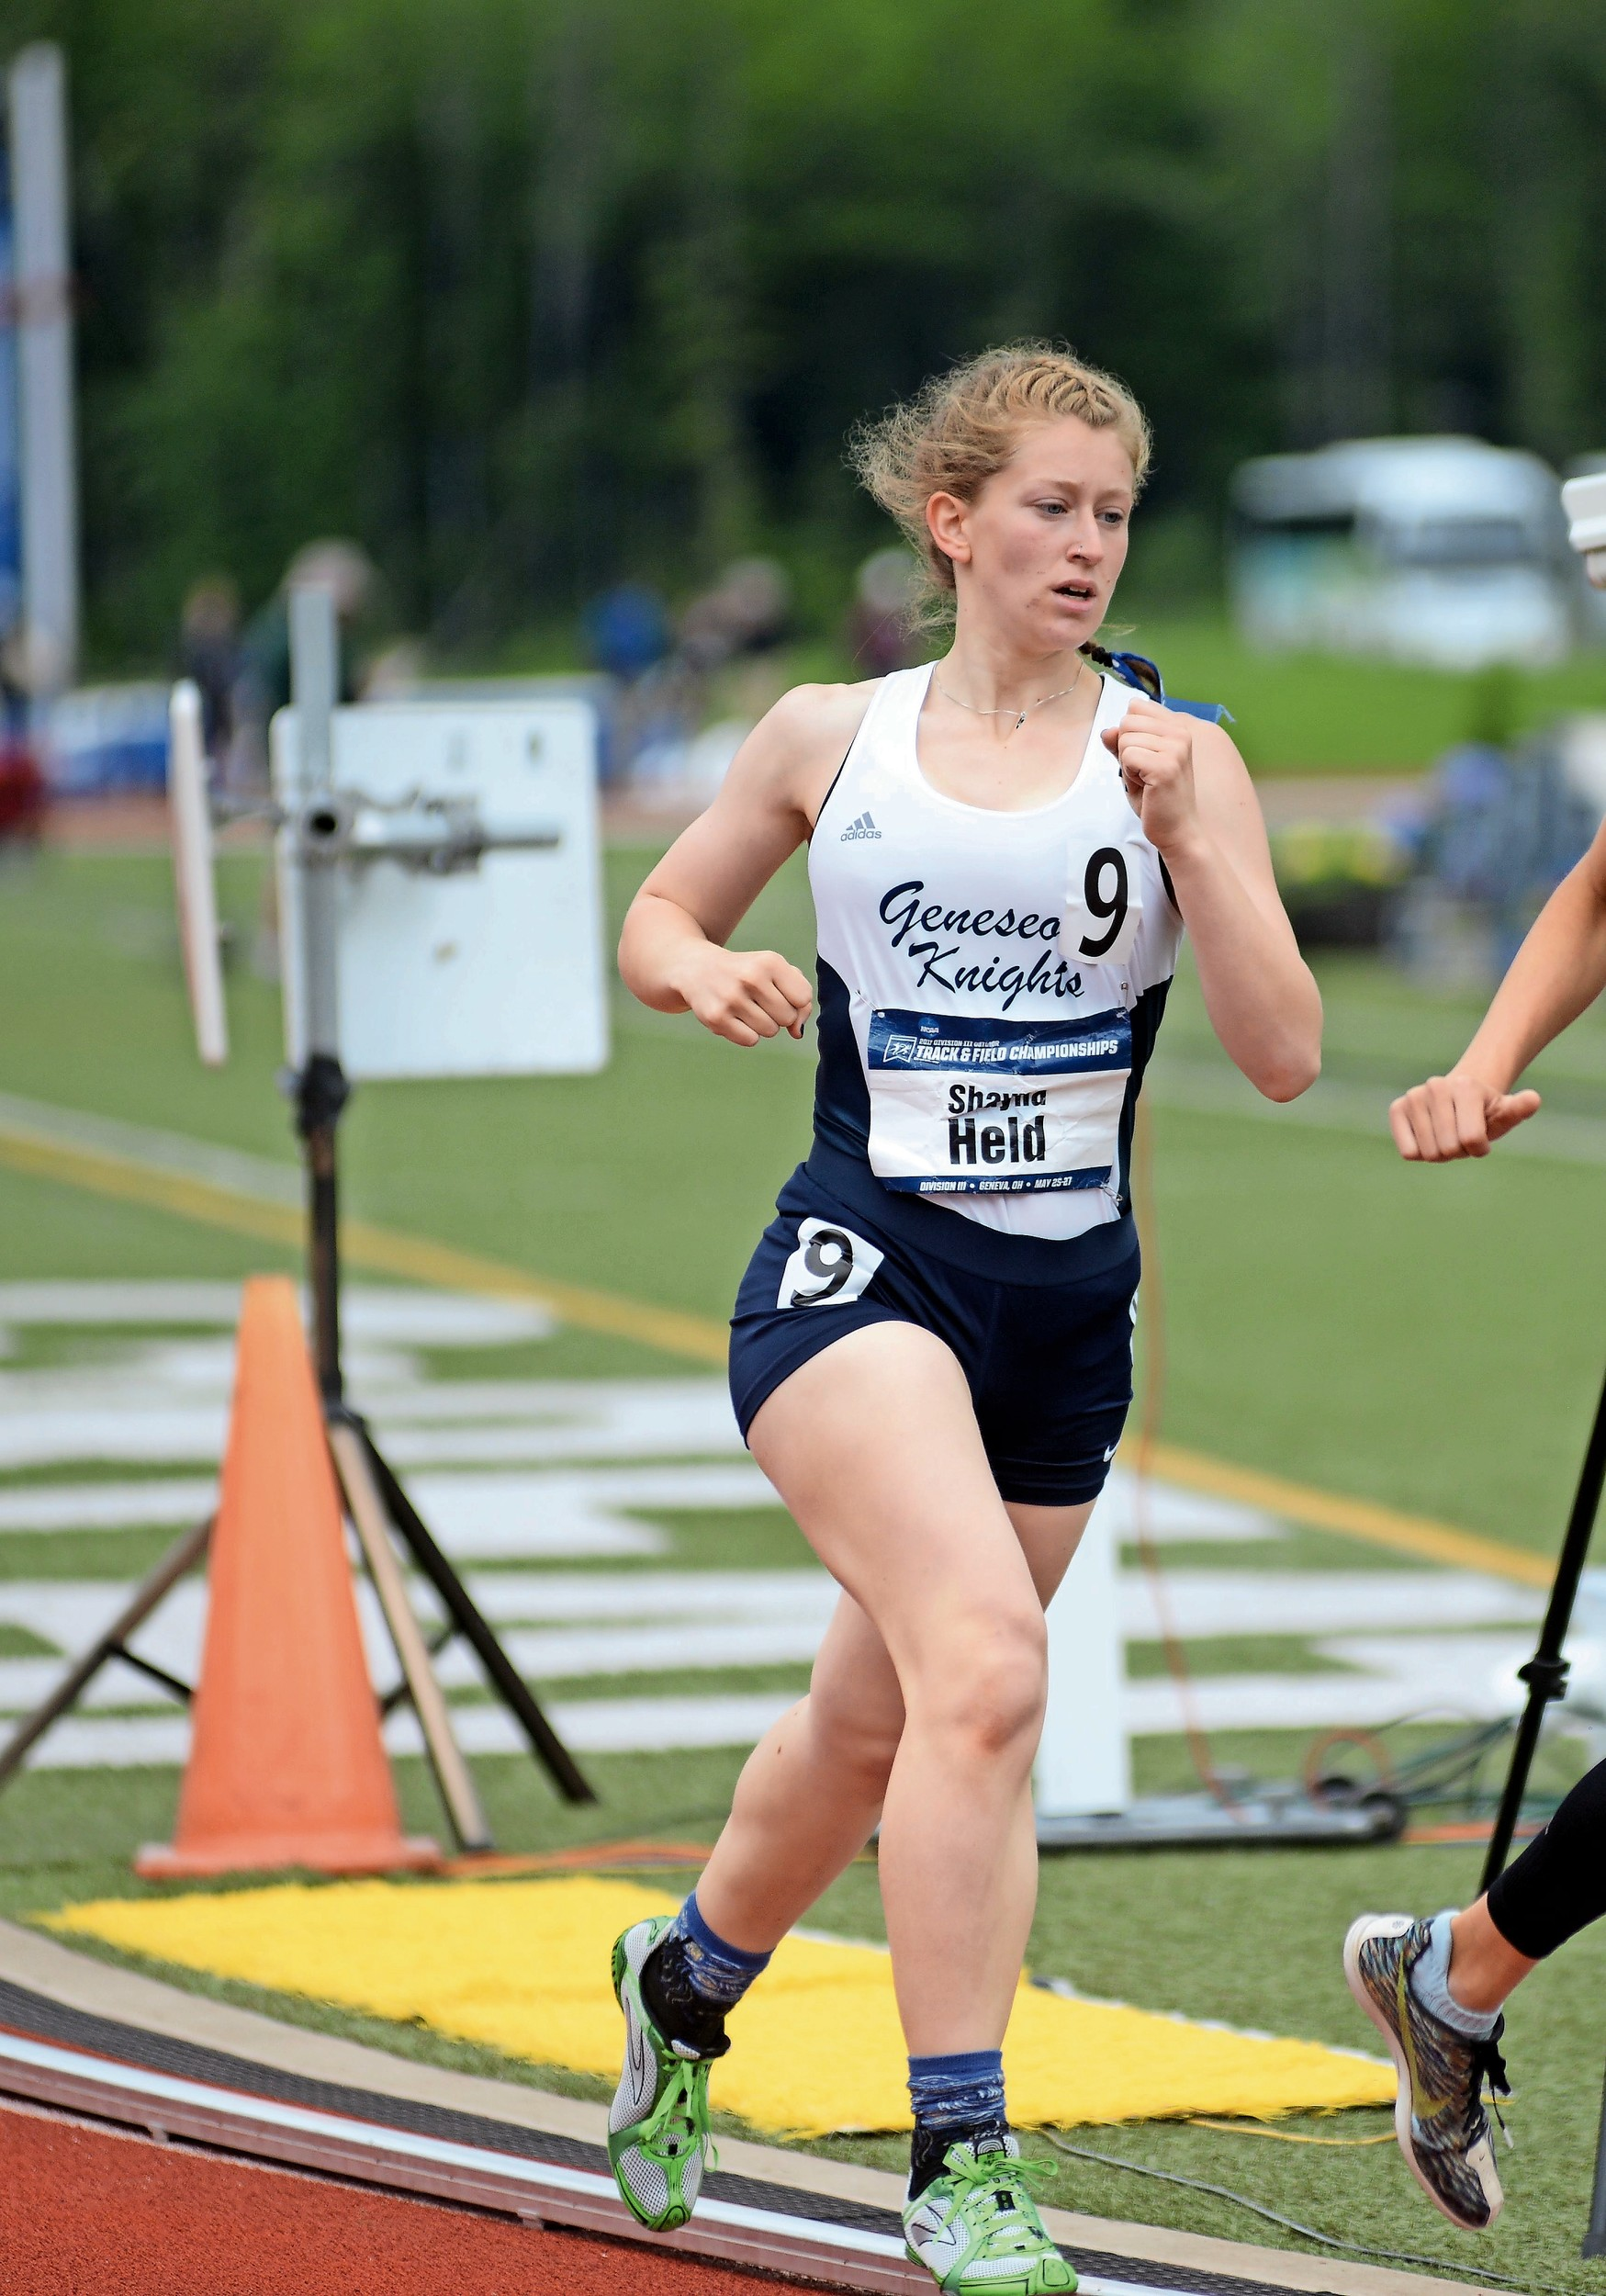 Shayna Held, 19, ran for SUNY Geneseo at the NCAA Division III Outdoor Track and Field Championships on May 25.